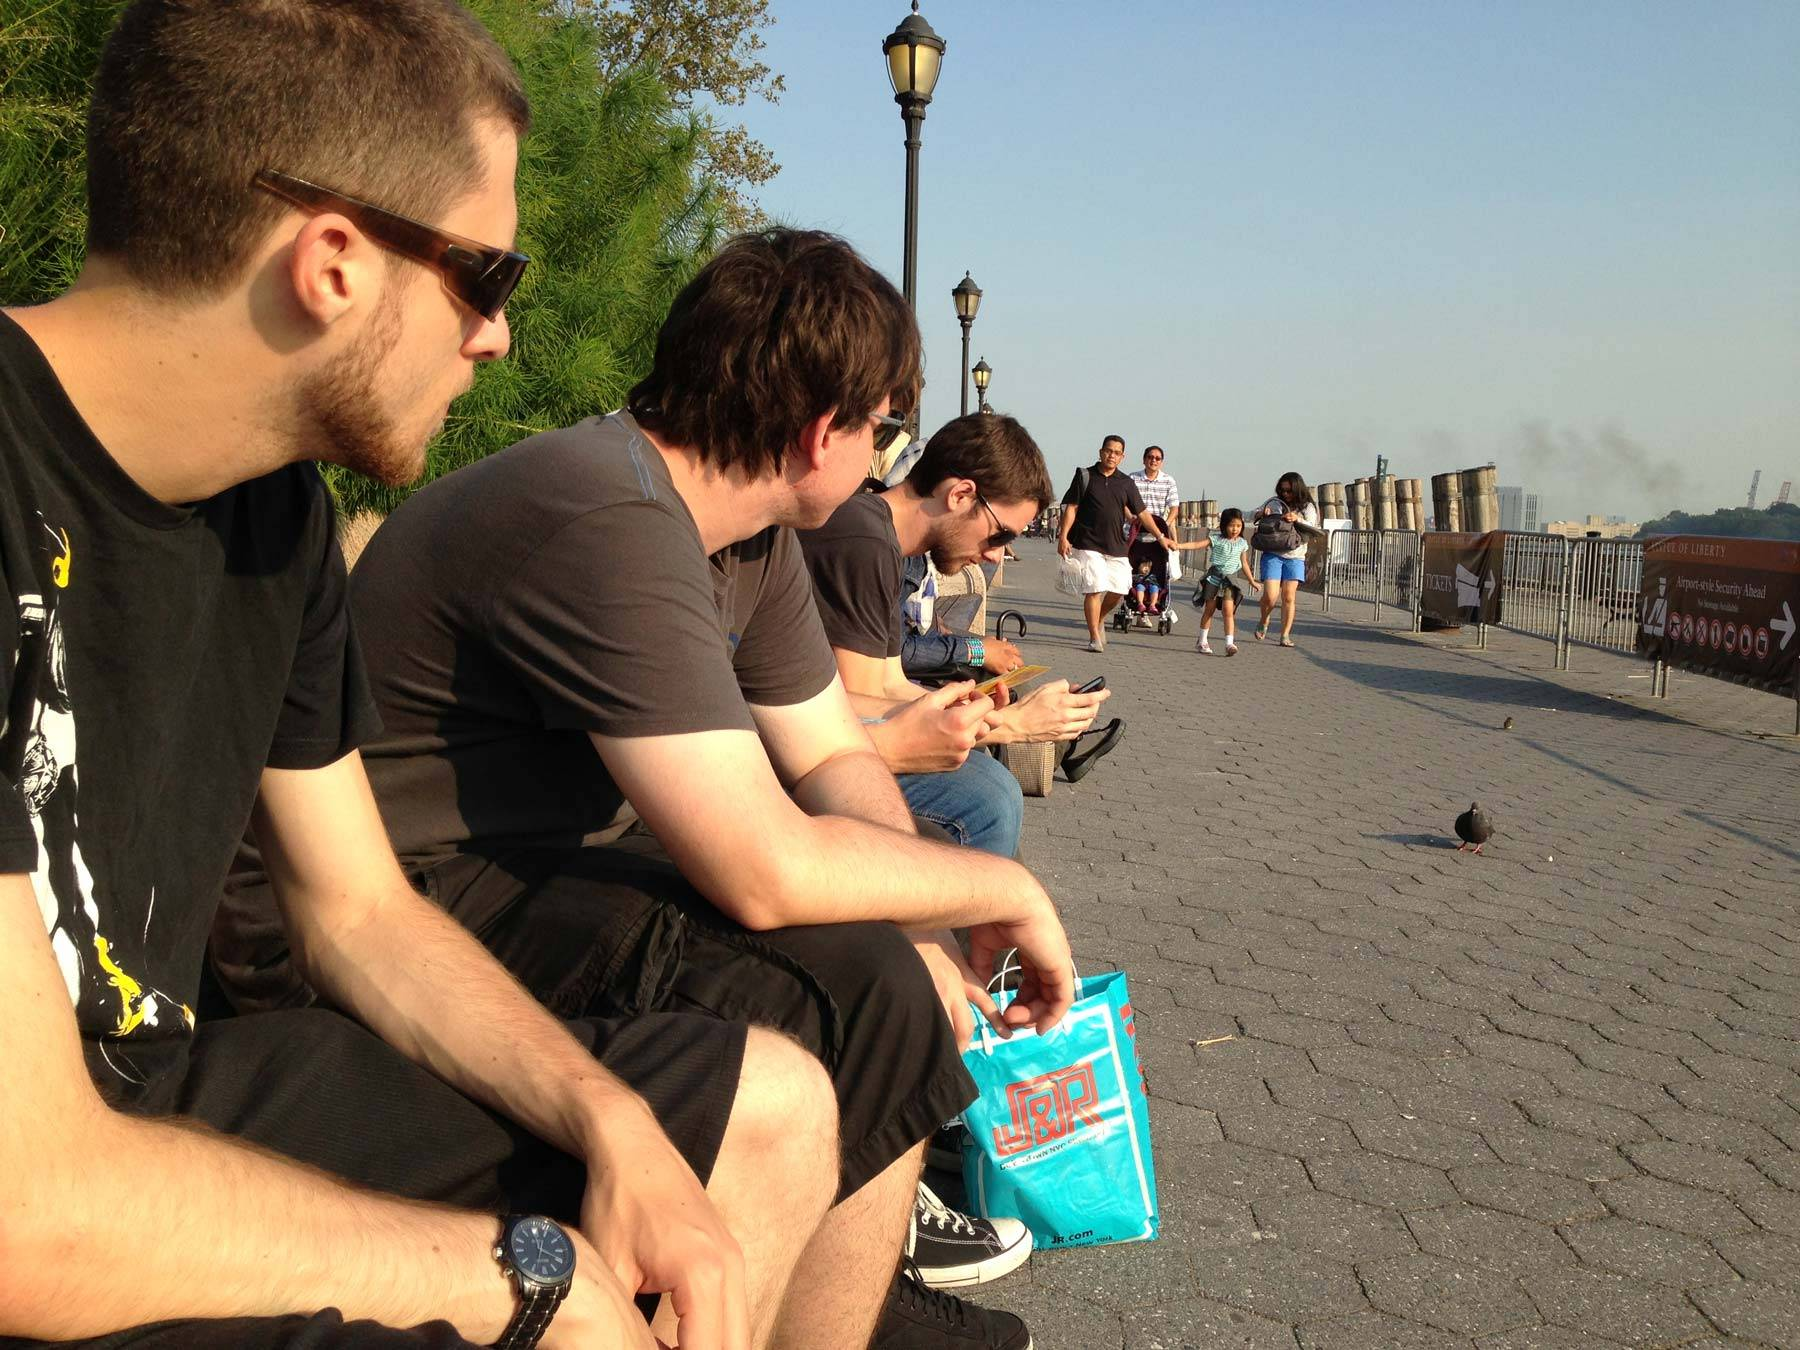 Irwin, Andrew, Butcher, and Jared sitting at the bay